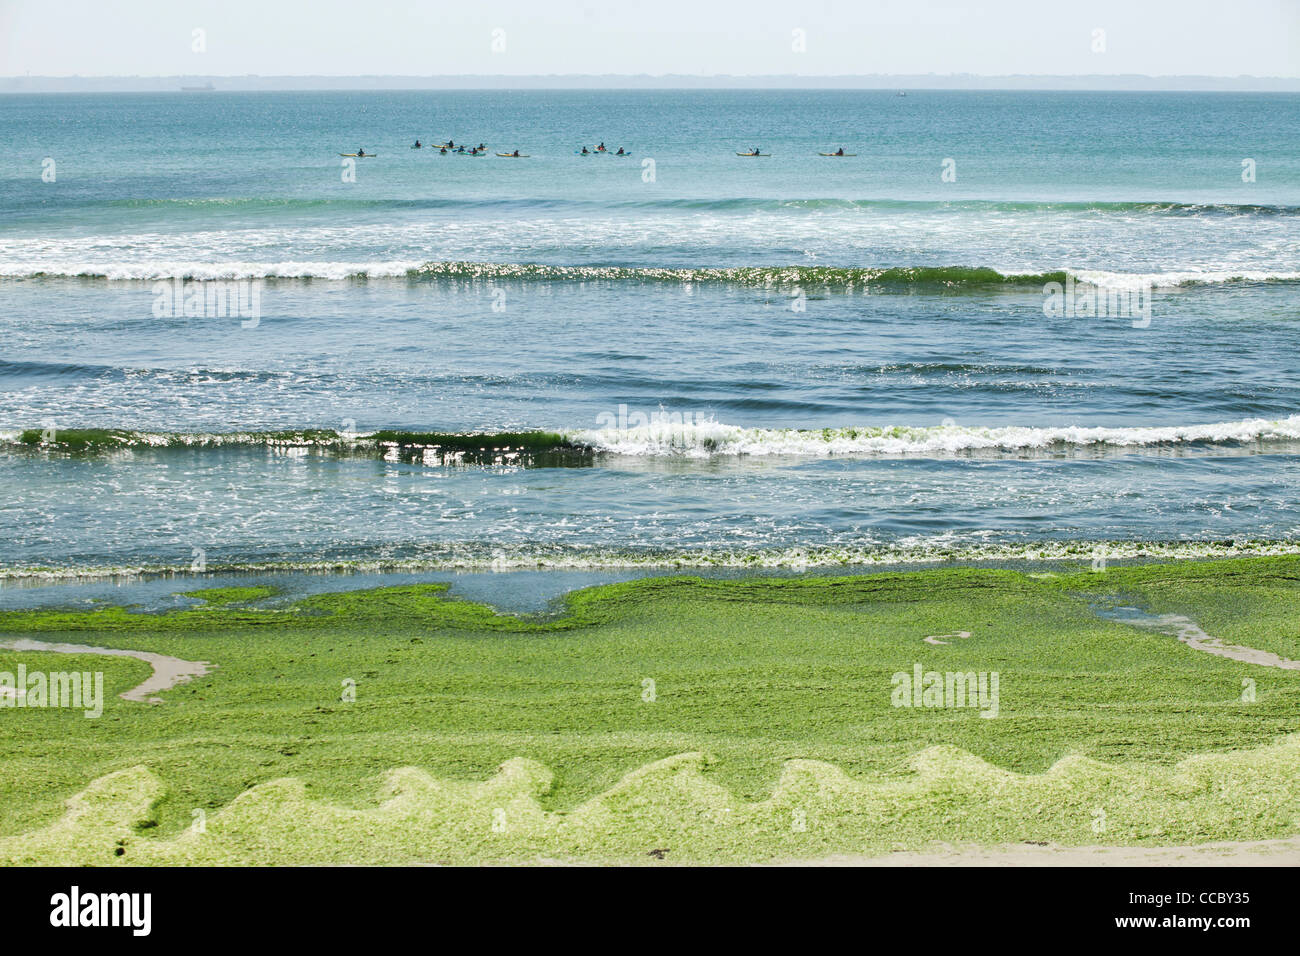 Toxic algae washed up on beach, Plage de Postolonnec, Crozon Peninsula, FinistÅre, Brittany, France - Stock Image